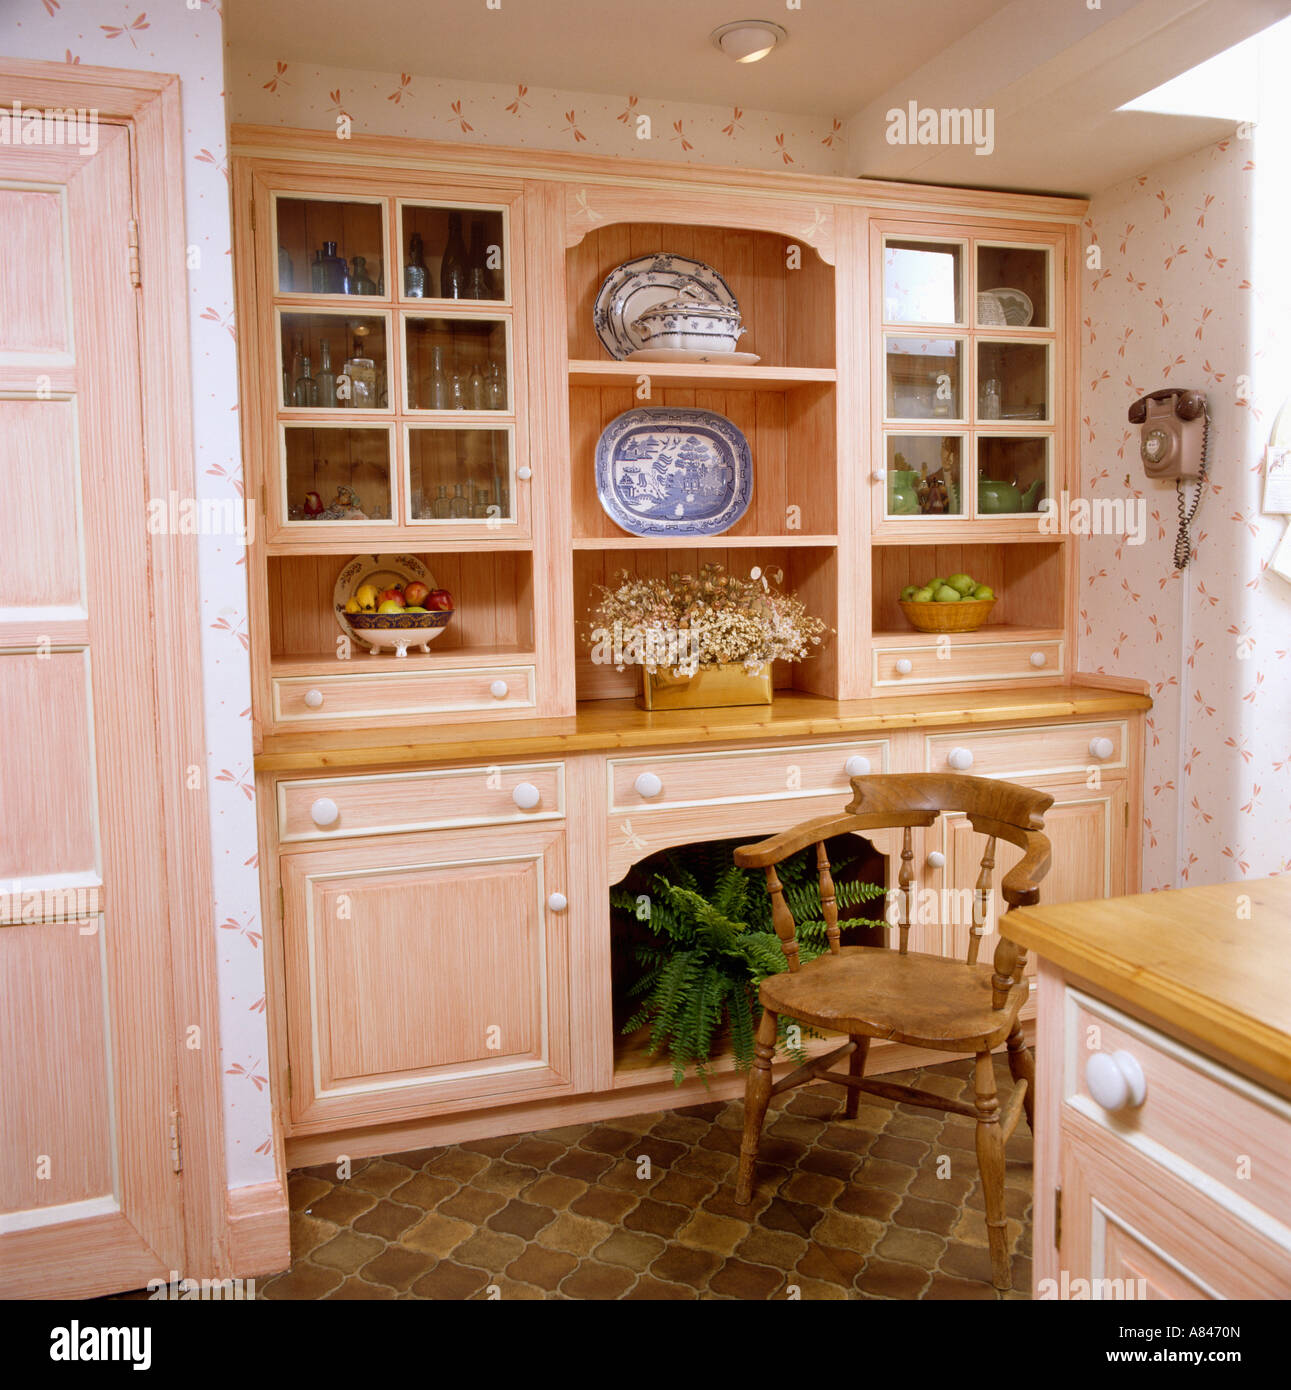 Wooden chair in front of built in dresser in peach traditional kitchen